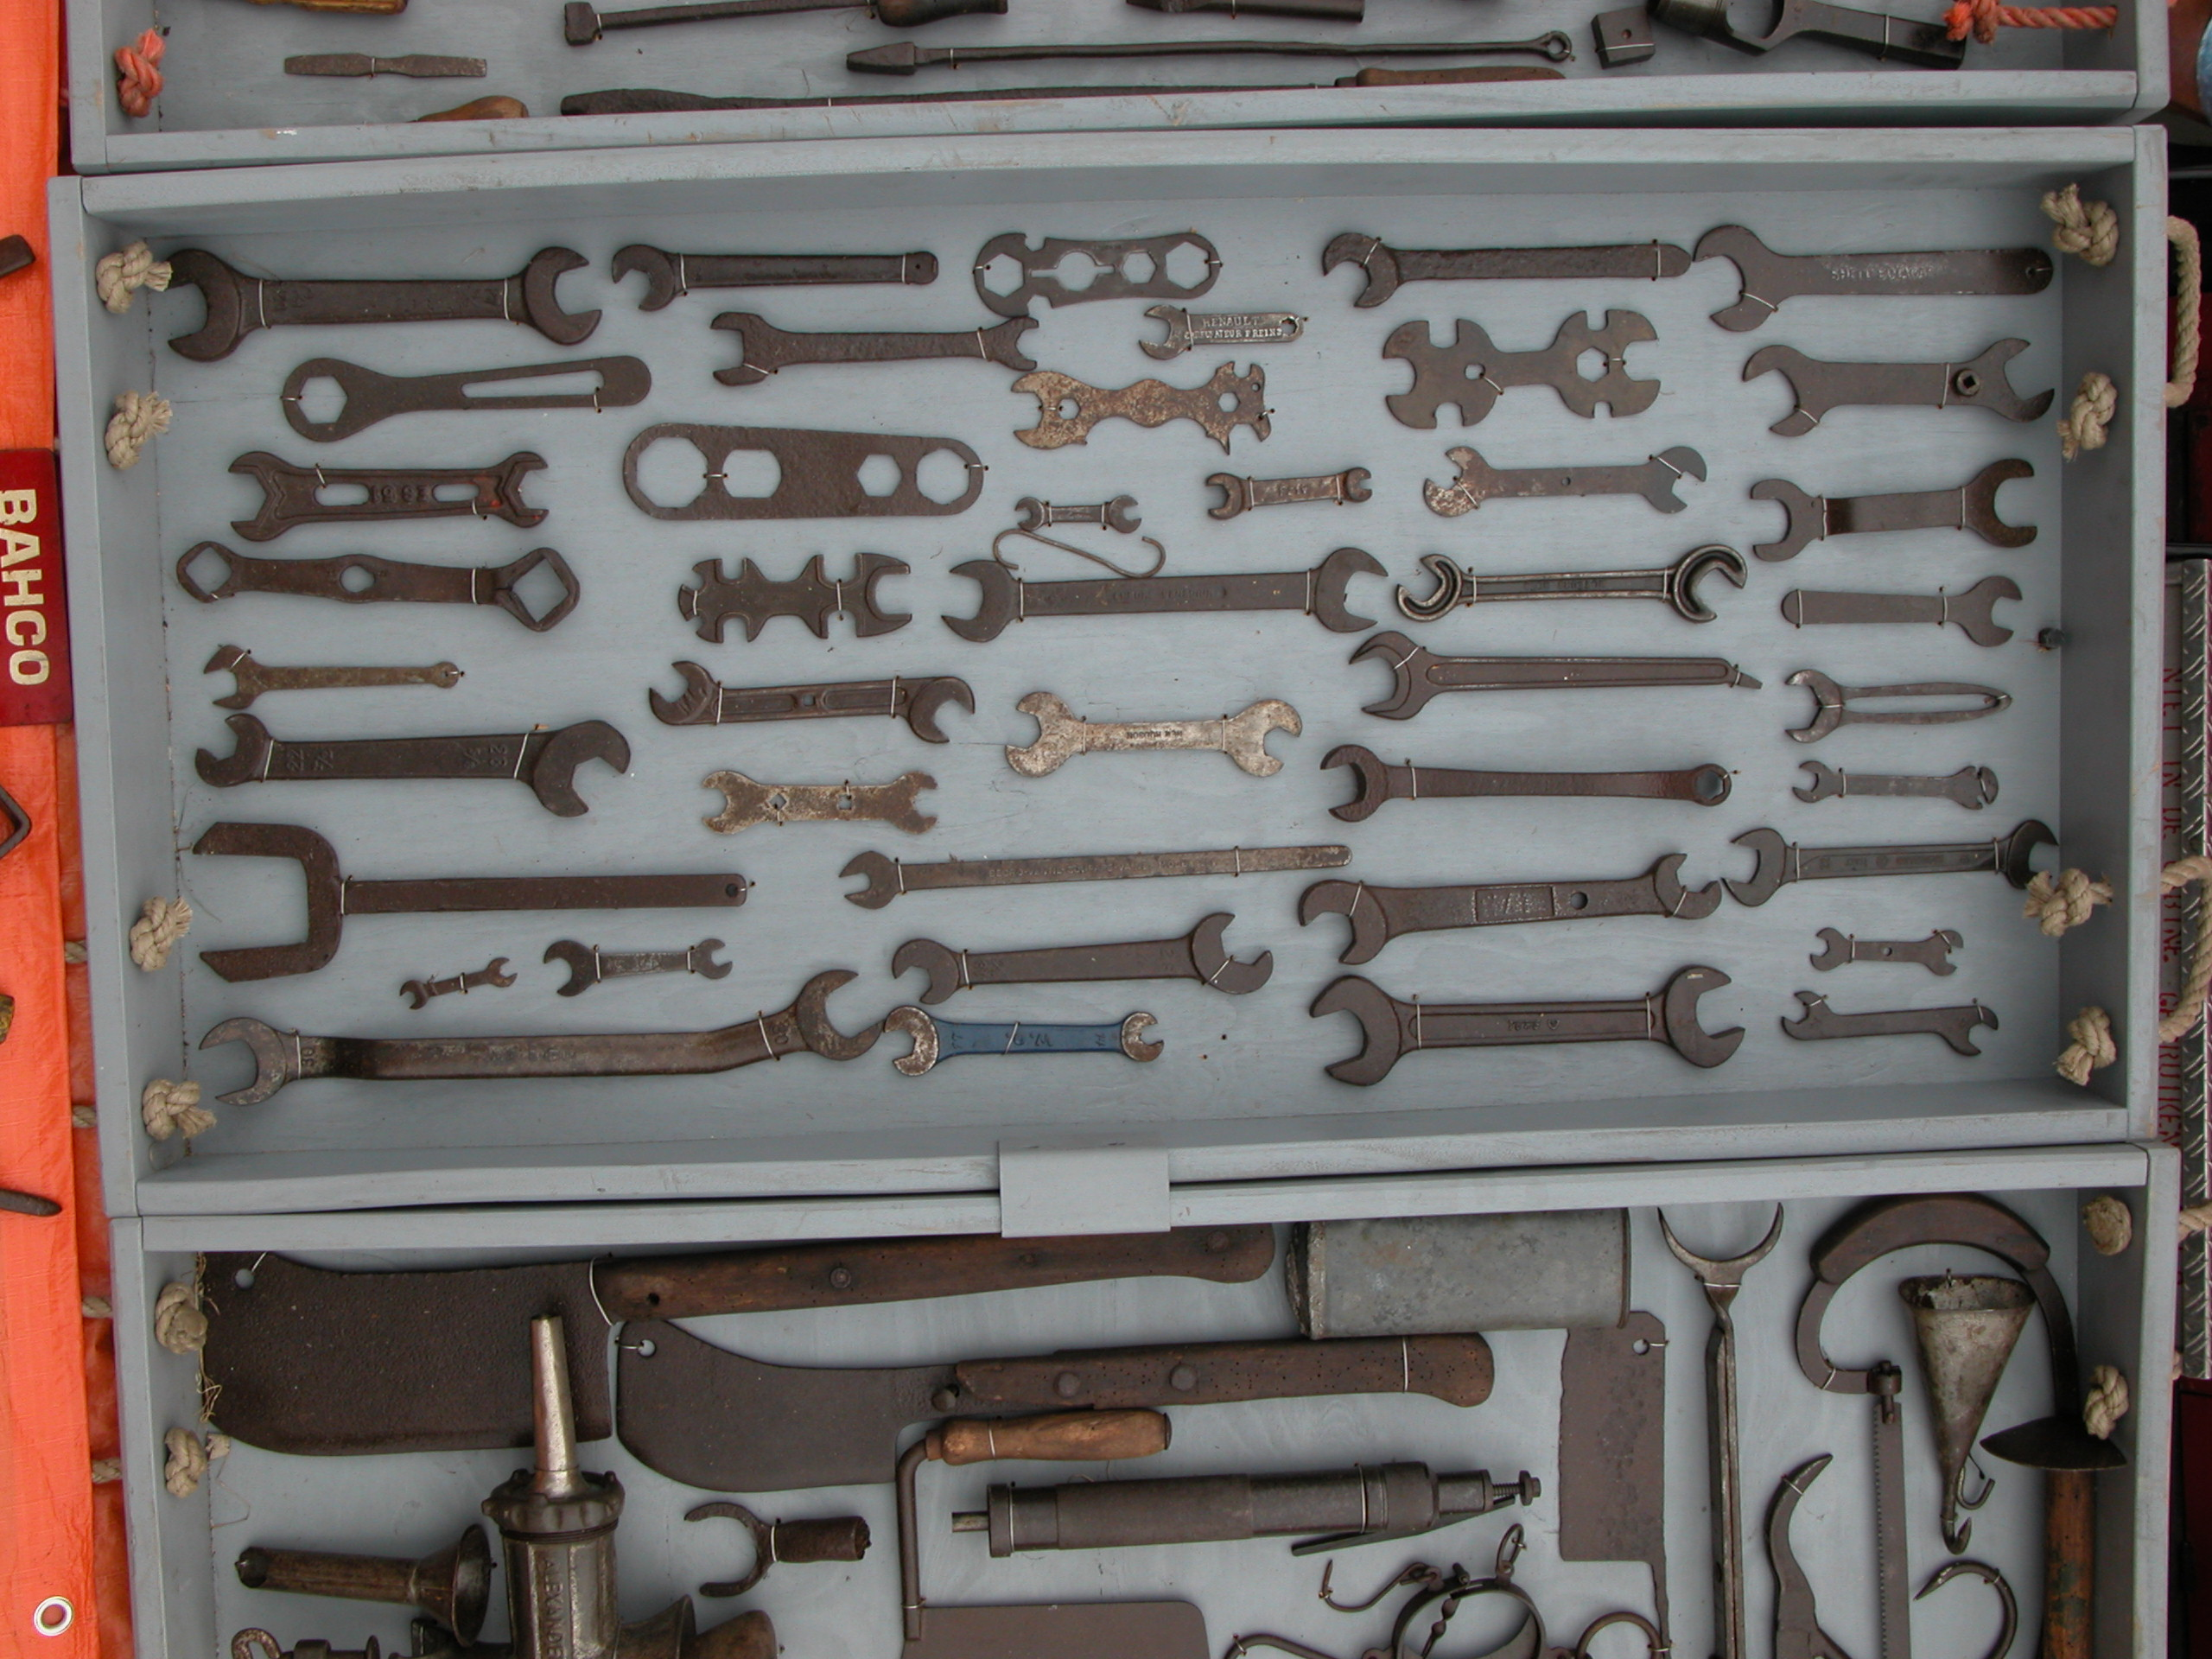 spanner spanners tools toolbox d.i.y.